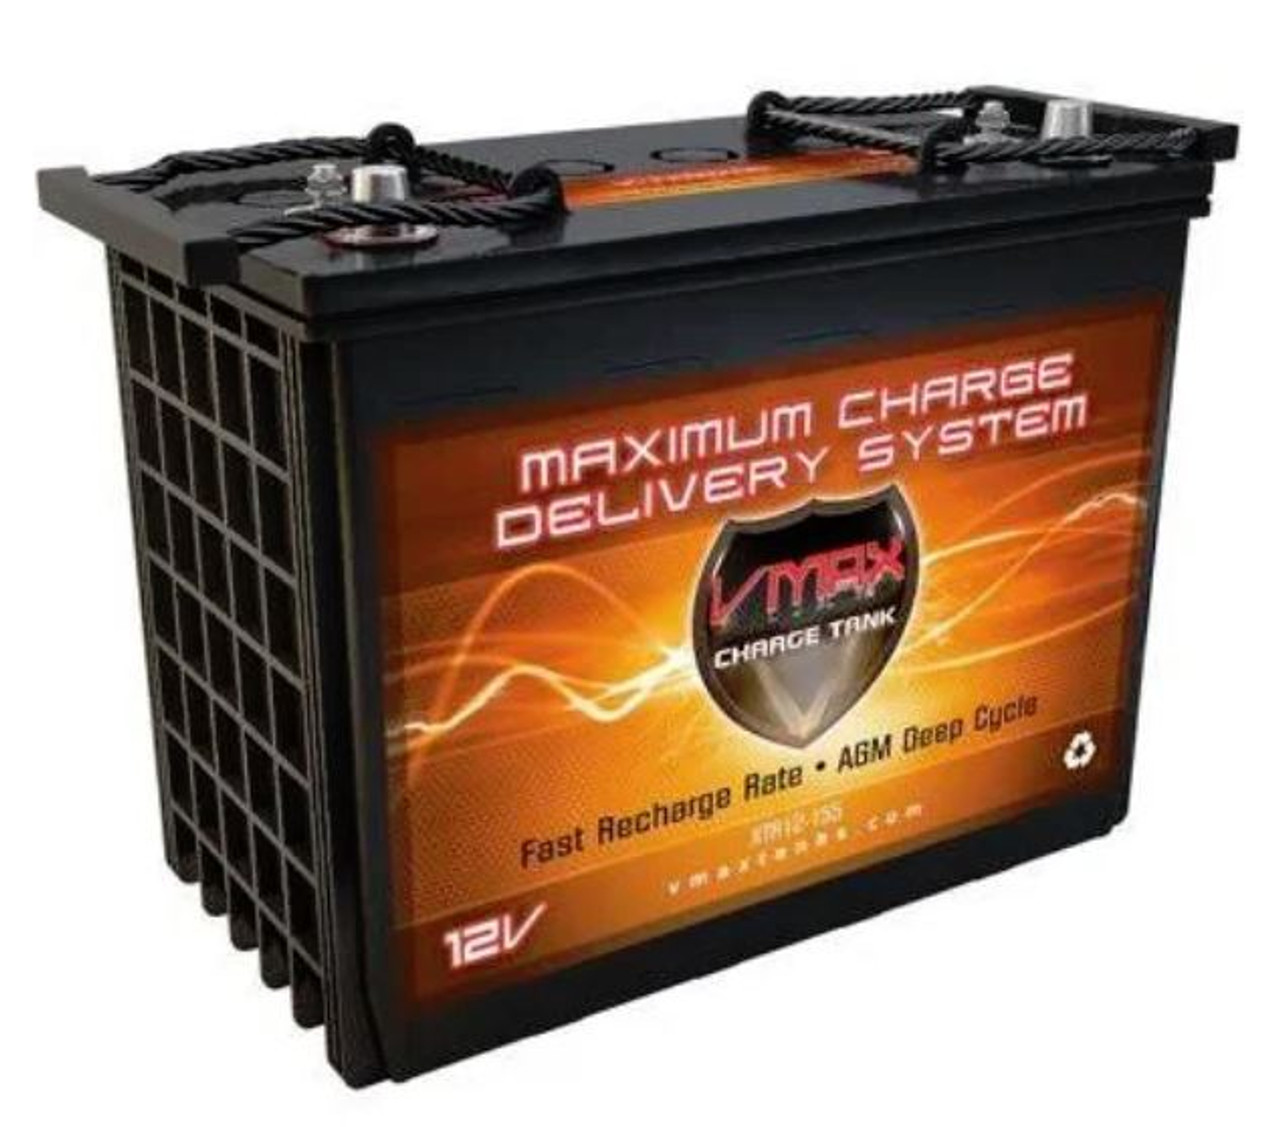 VMAX Charge Tank XTR12-155 12 Volts 155AH Deep Cycle, XTREME AGM Battery